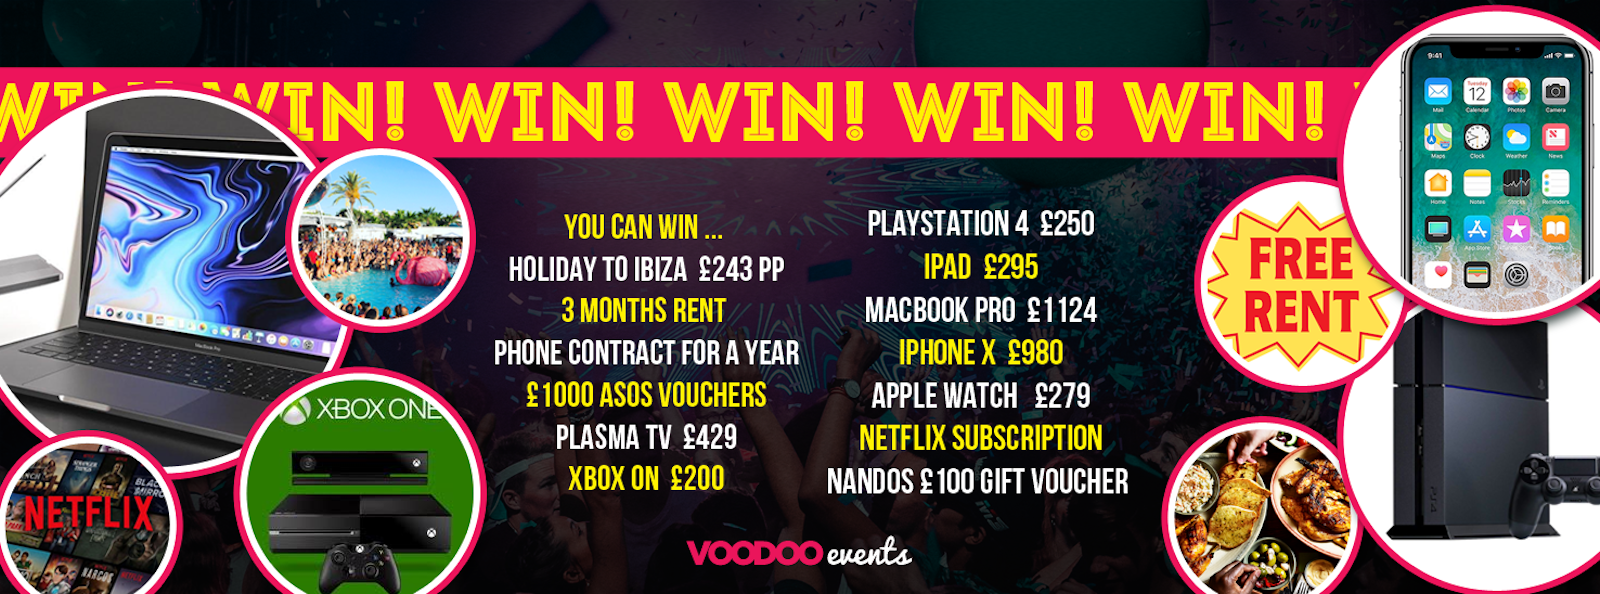 WIN!!! SHEFFIELD FRESHERS COMPETITION – FREE COMPETITION!